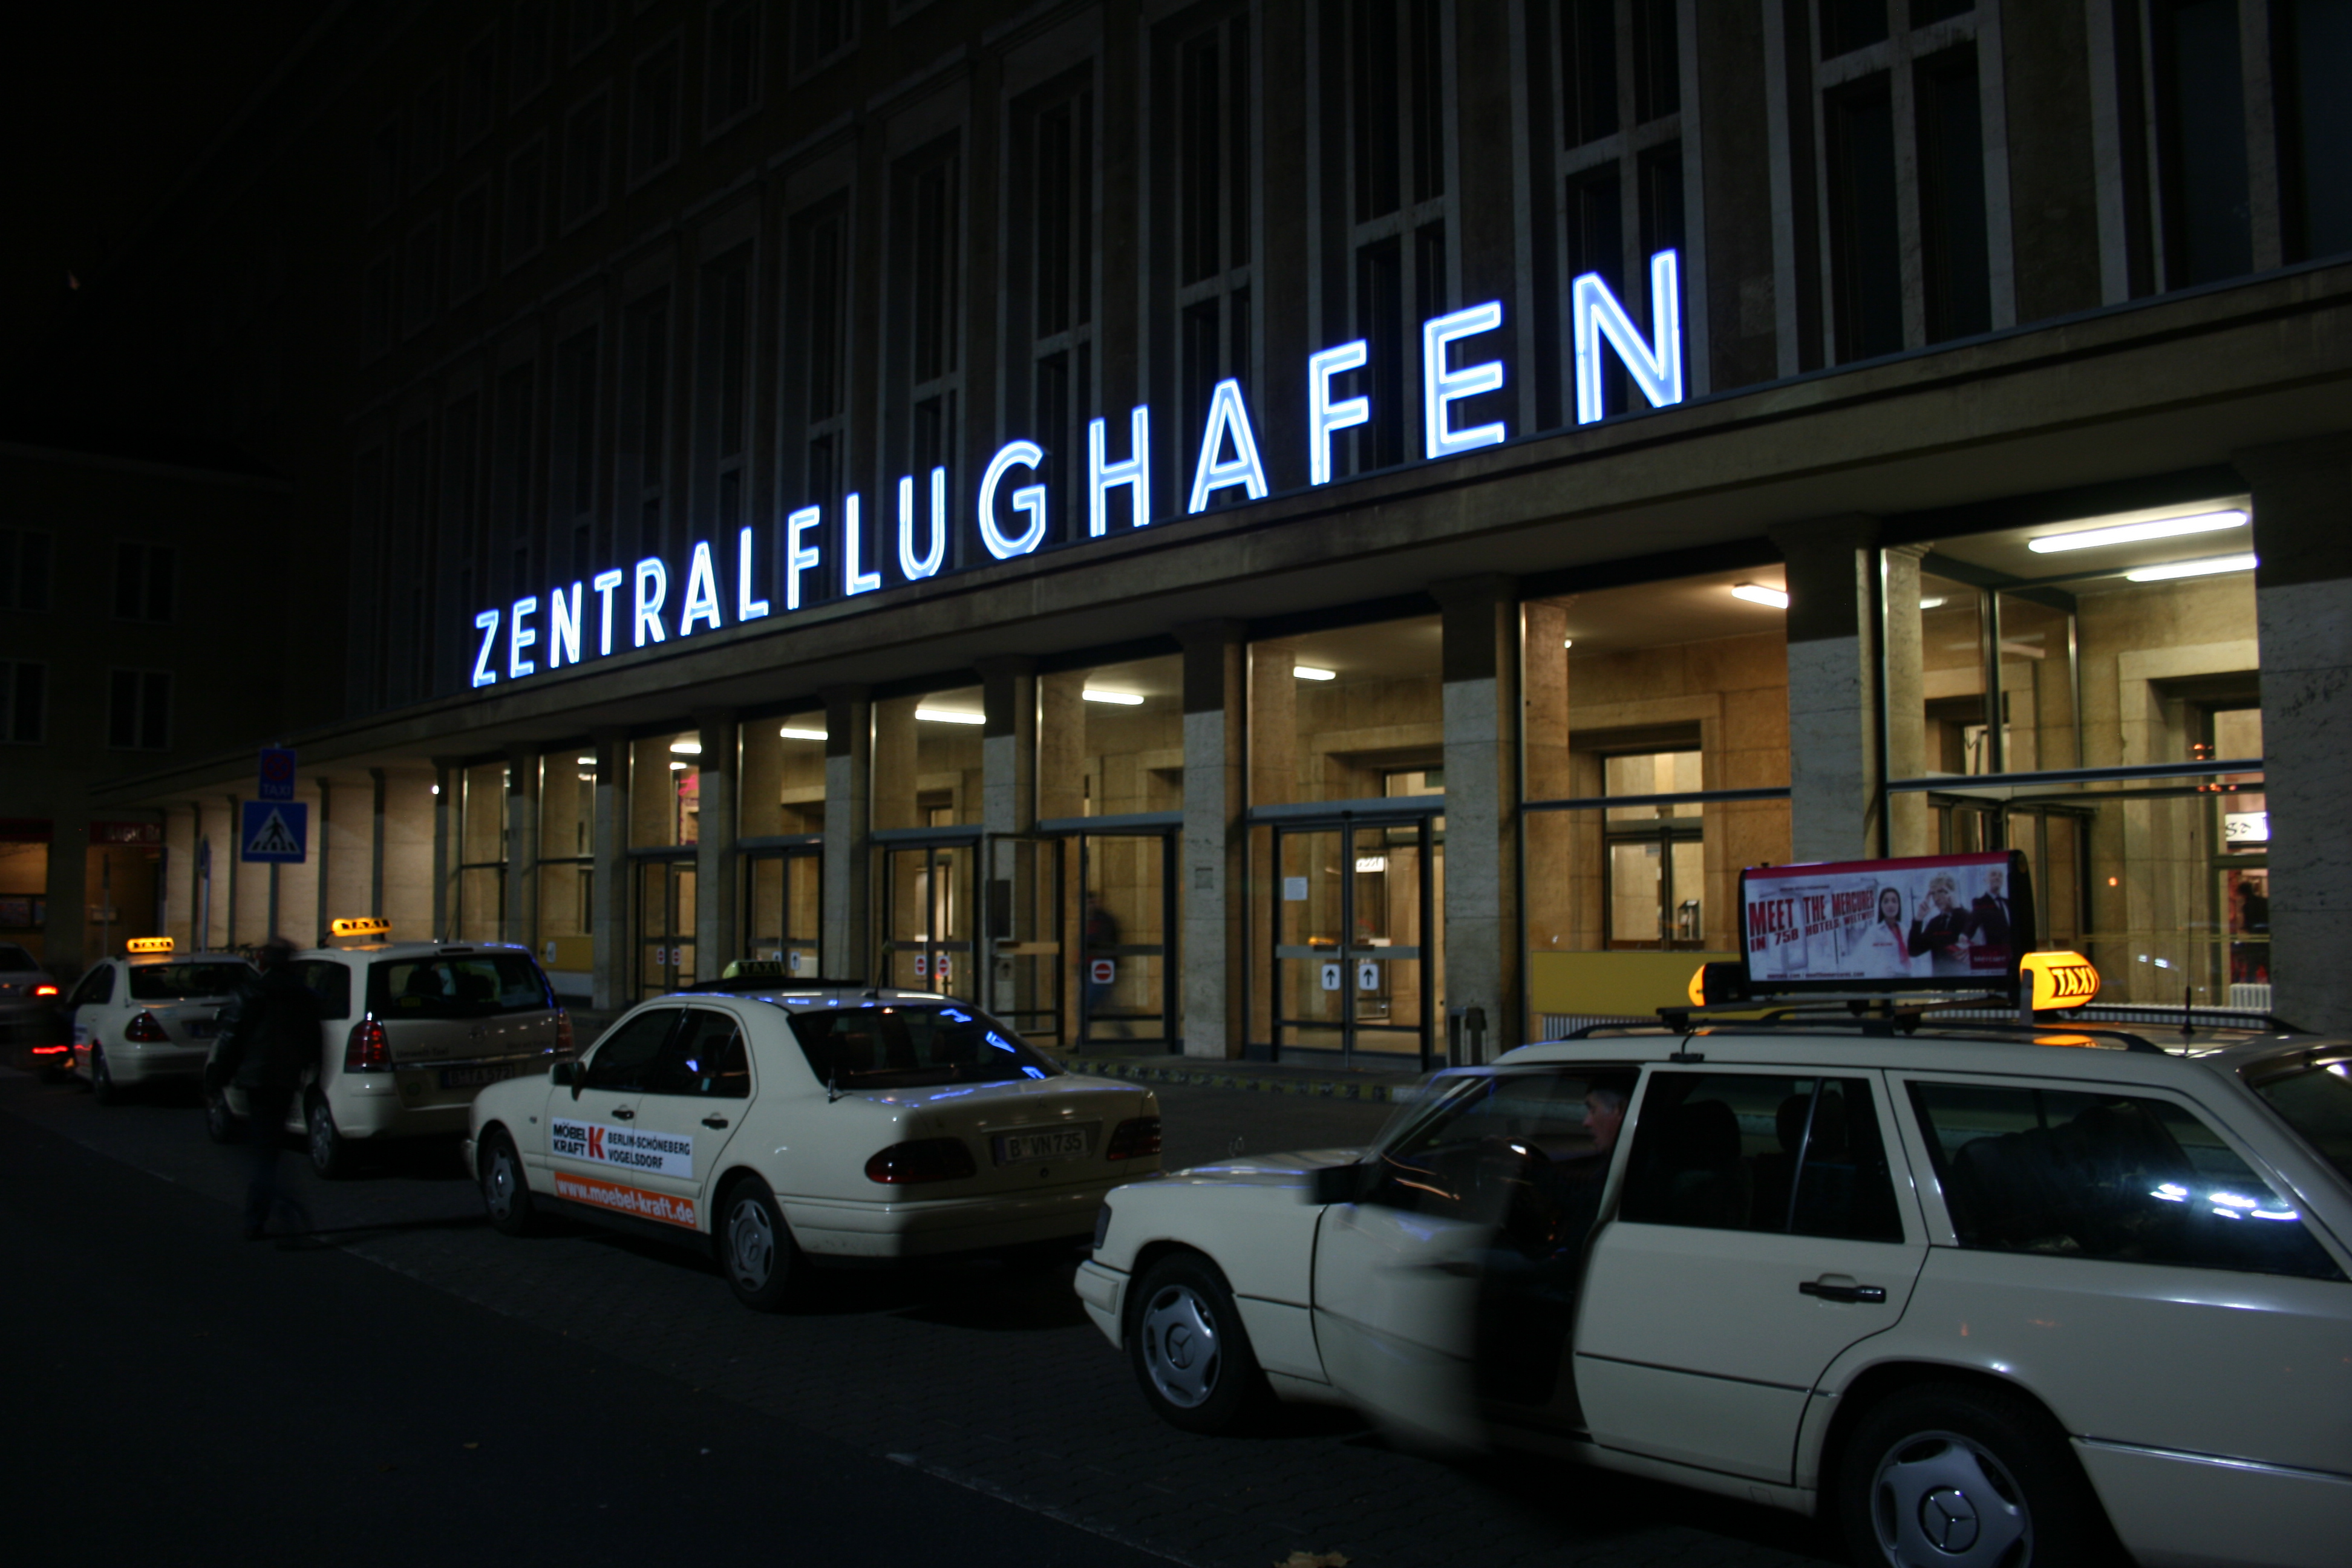 taxi stand and neon sign